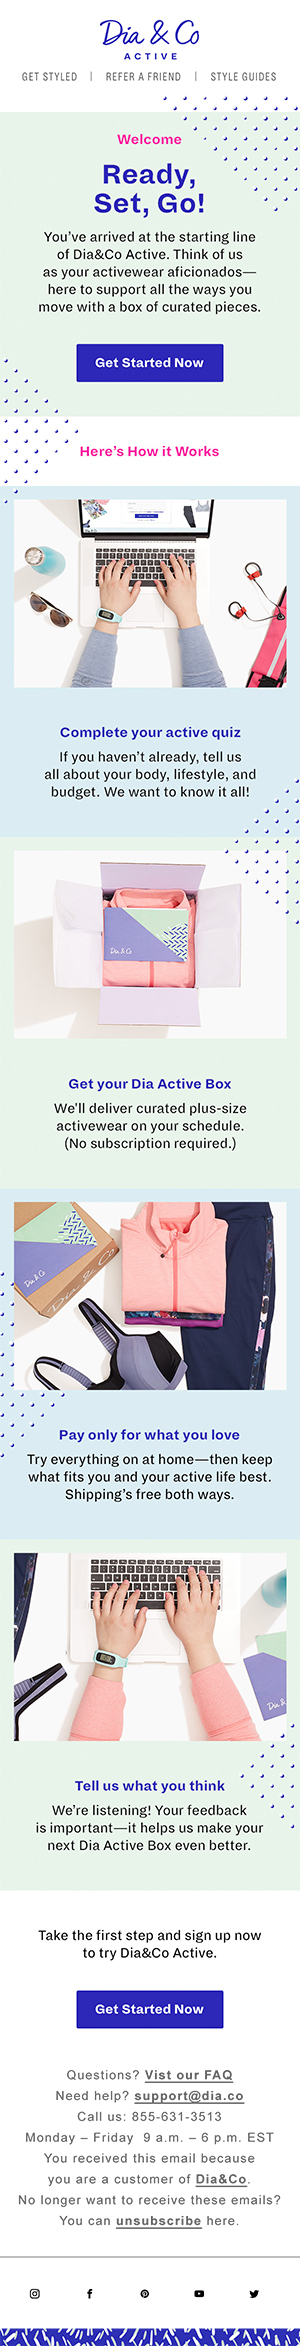 20180515-active-welcome-email-1-d